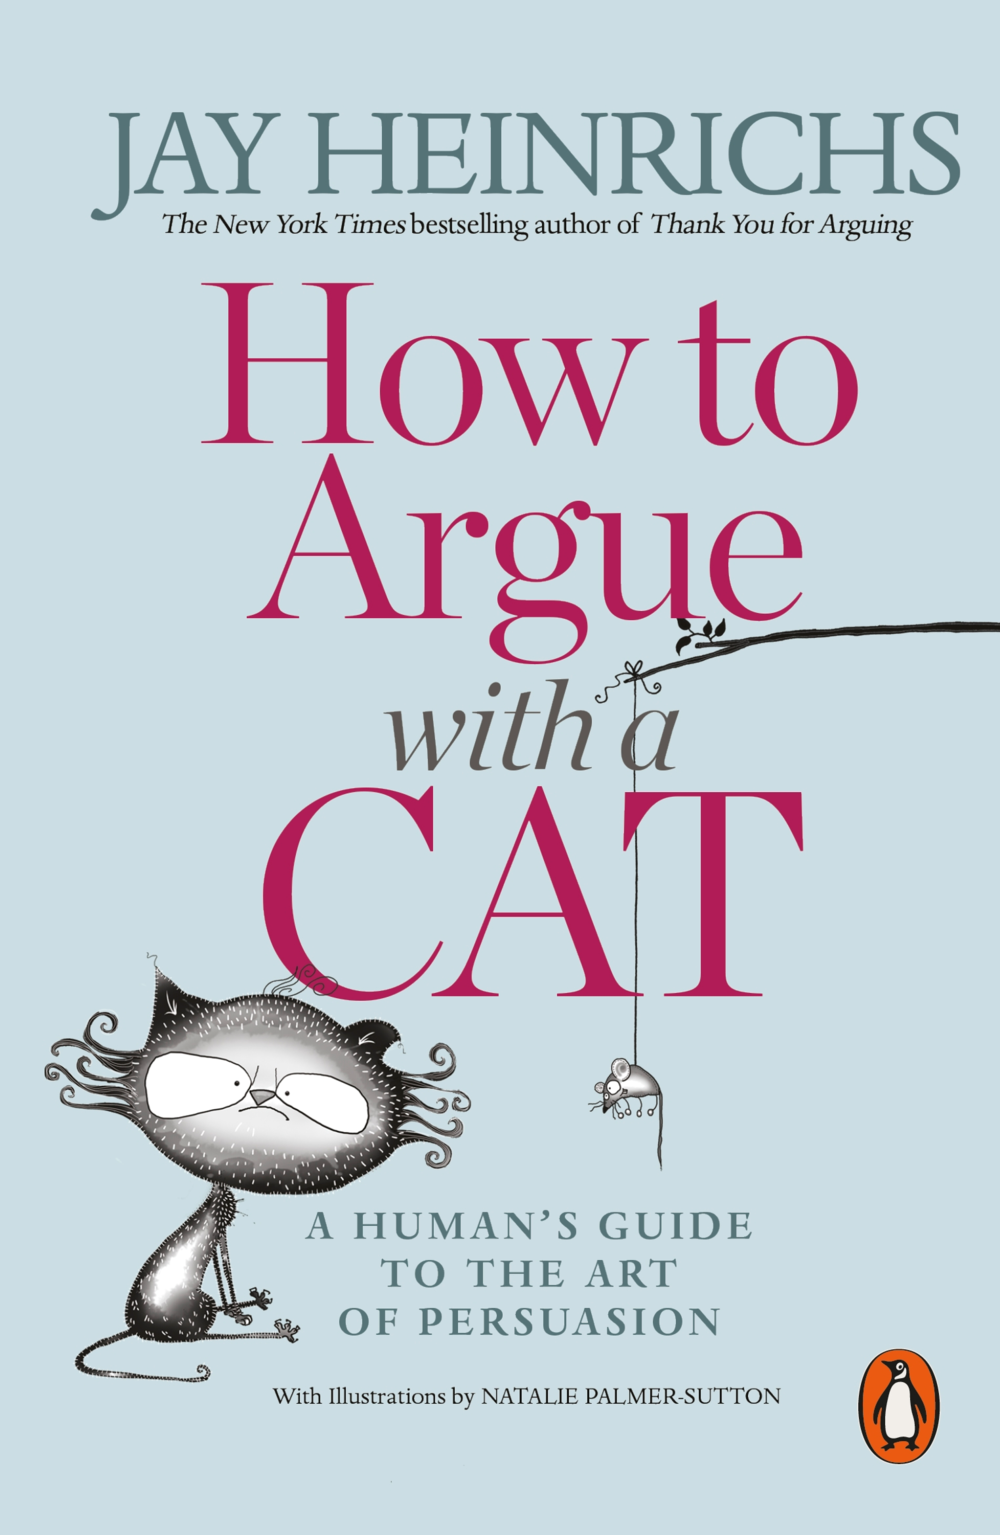 How To Argue With A Cat | A Humans Guide To The Art Of Persuasion | Jay Heinrichs | Illustrator Natalie Palmer-Sutton.png